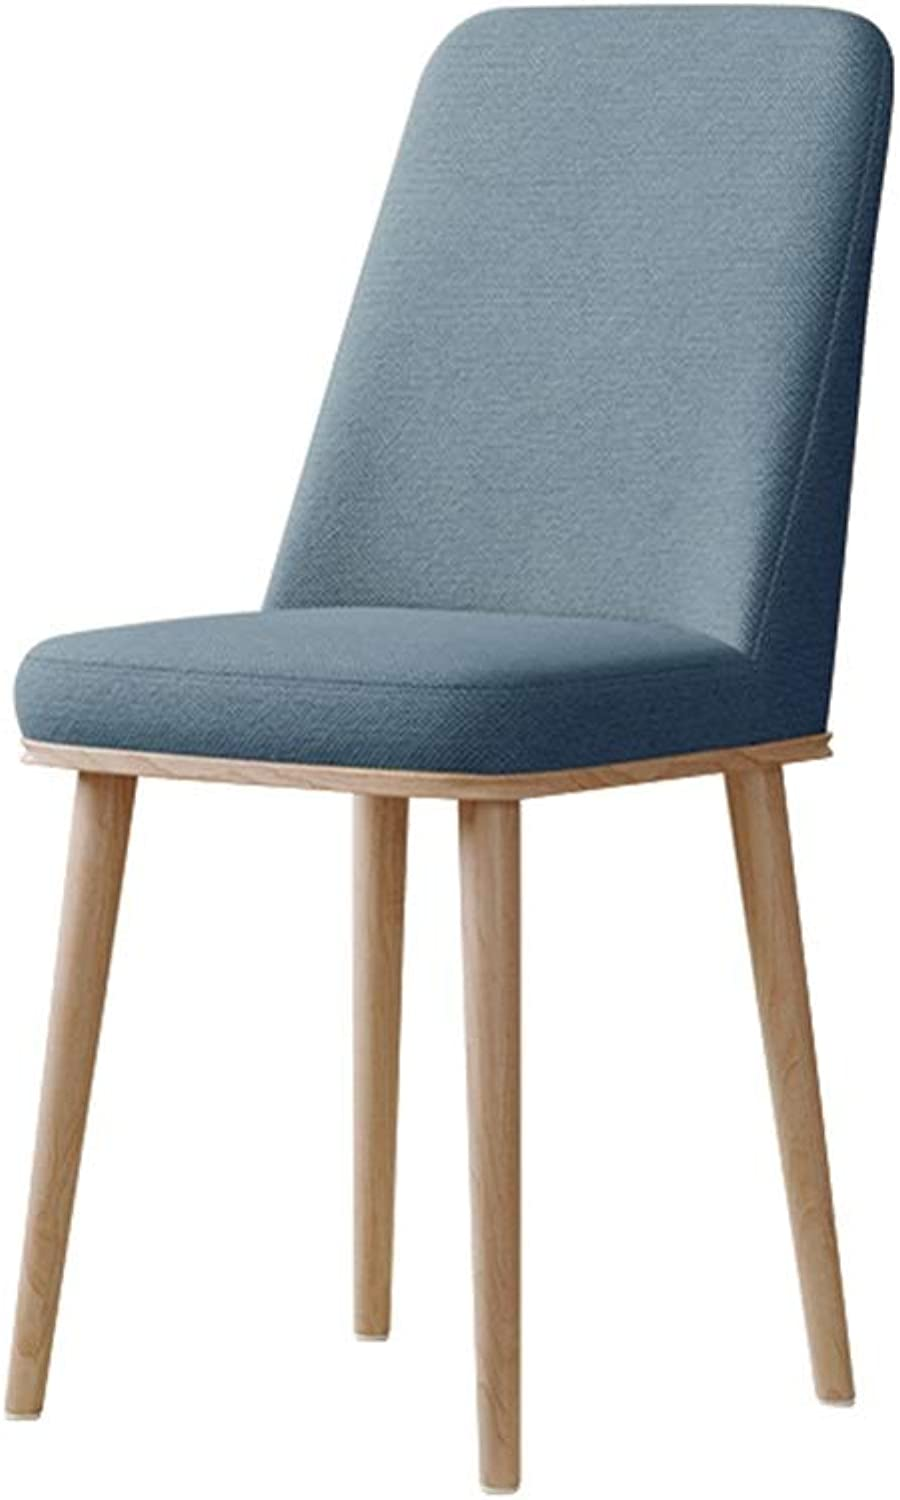 Dining Chair Wooden Living Room Chairs Leather Kitchen Bedroom Waterproof Leisure Chairs Upholstered Elastic Sponge Filling (45×45×93cm) bluee